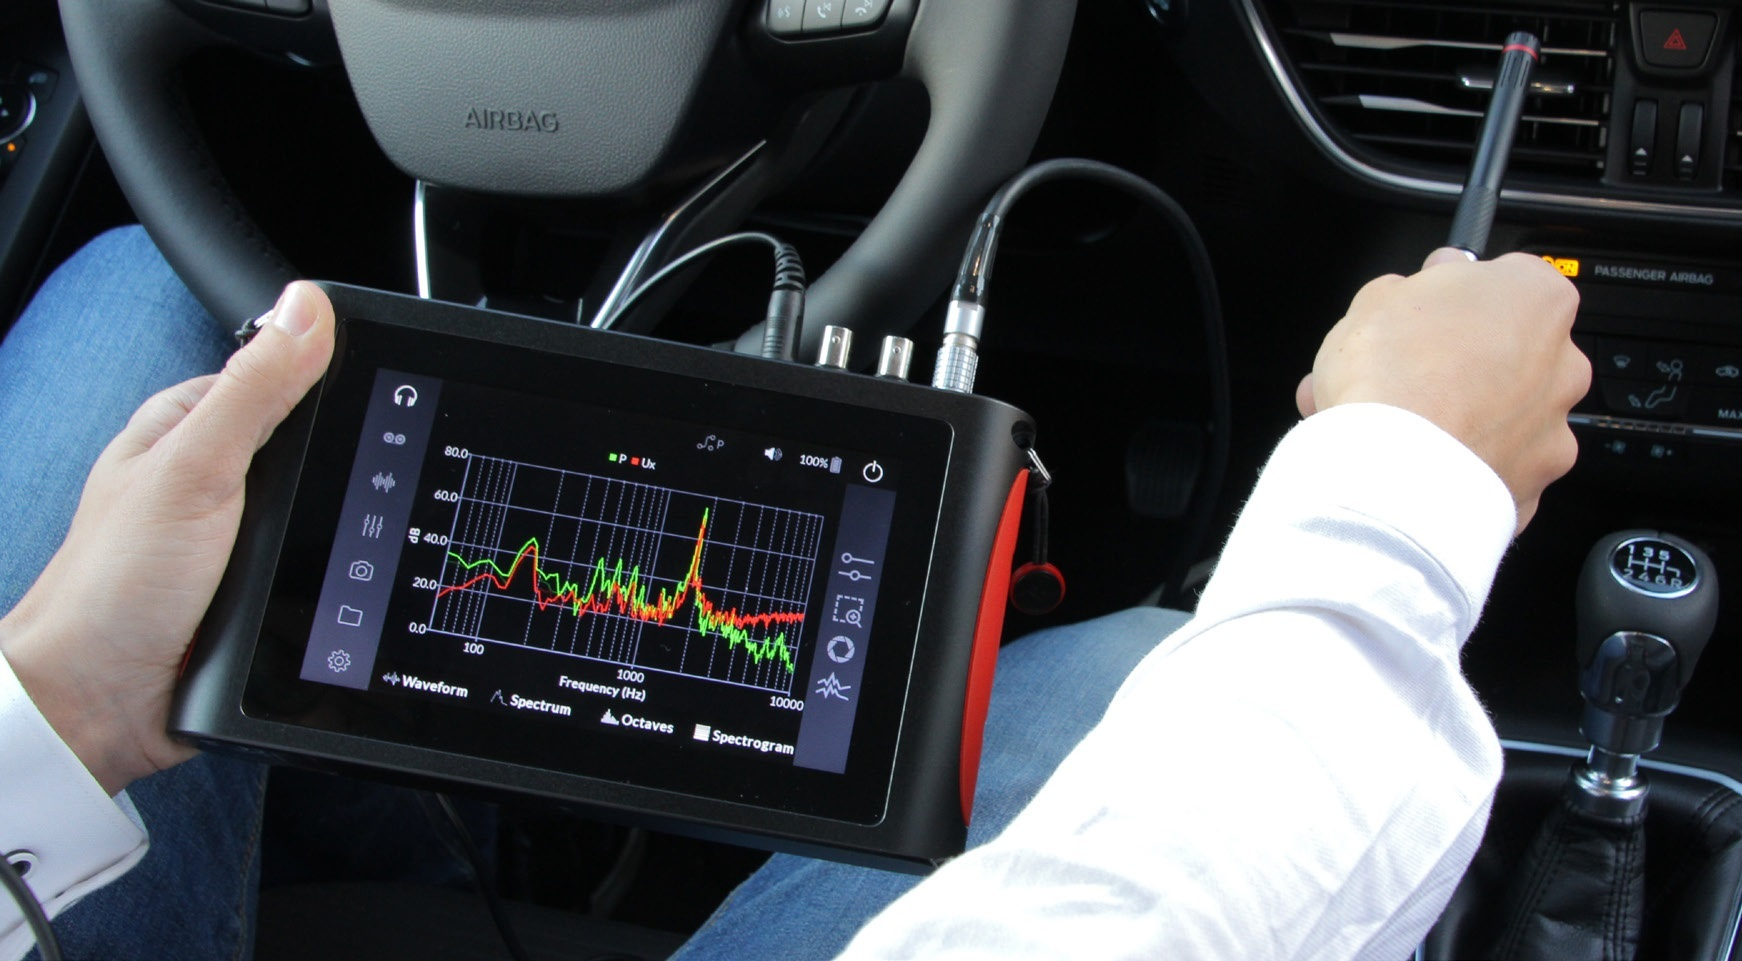 Voyager is able to provide real-time in-situ analysis capabilities for NVH specialists